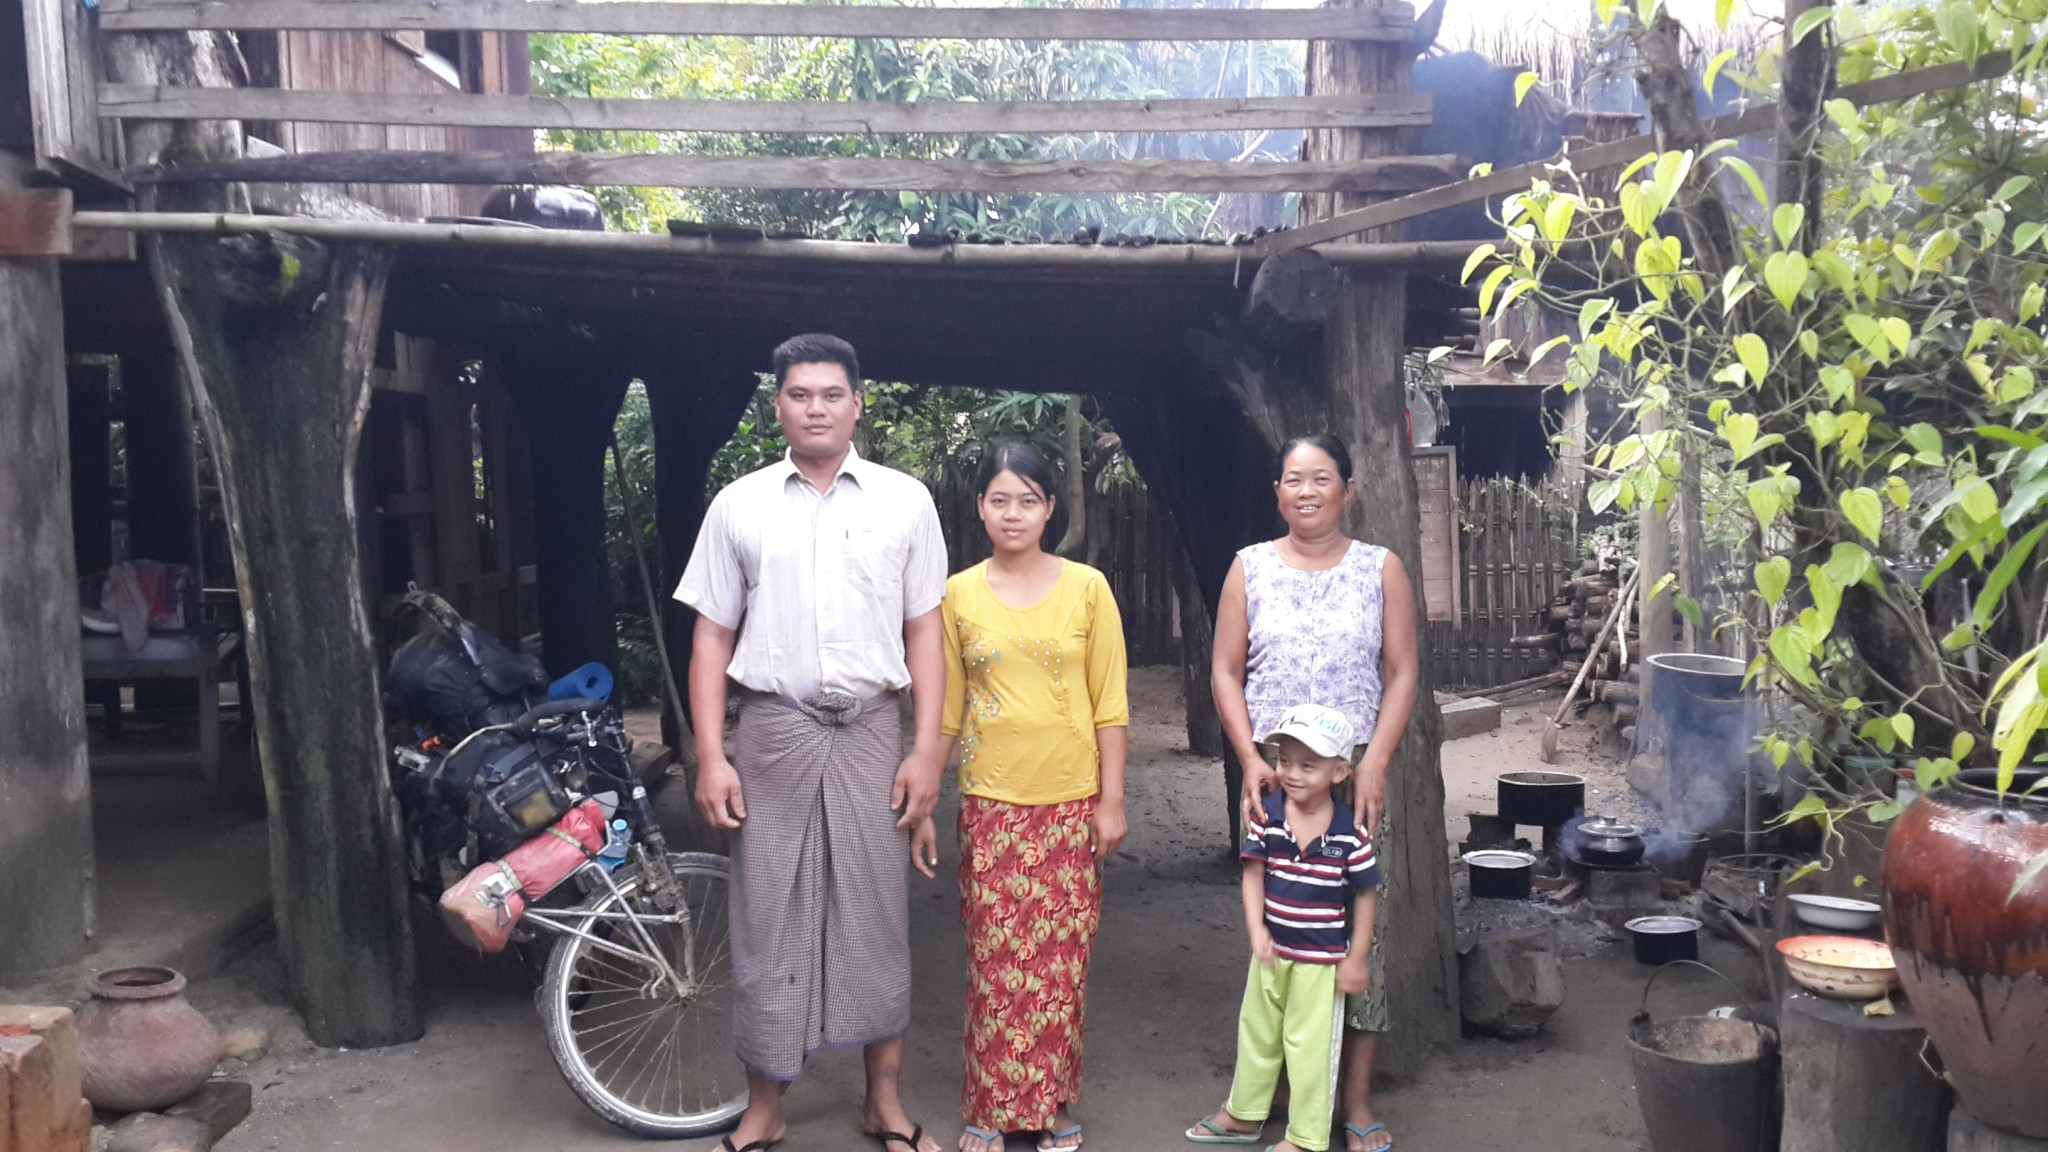 Aung, his wife, mother-in-law and son.